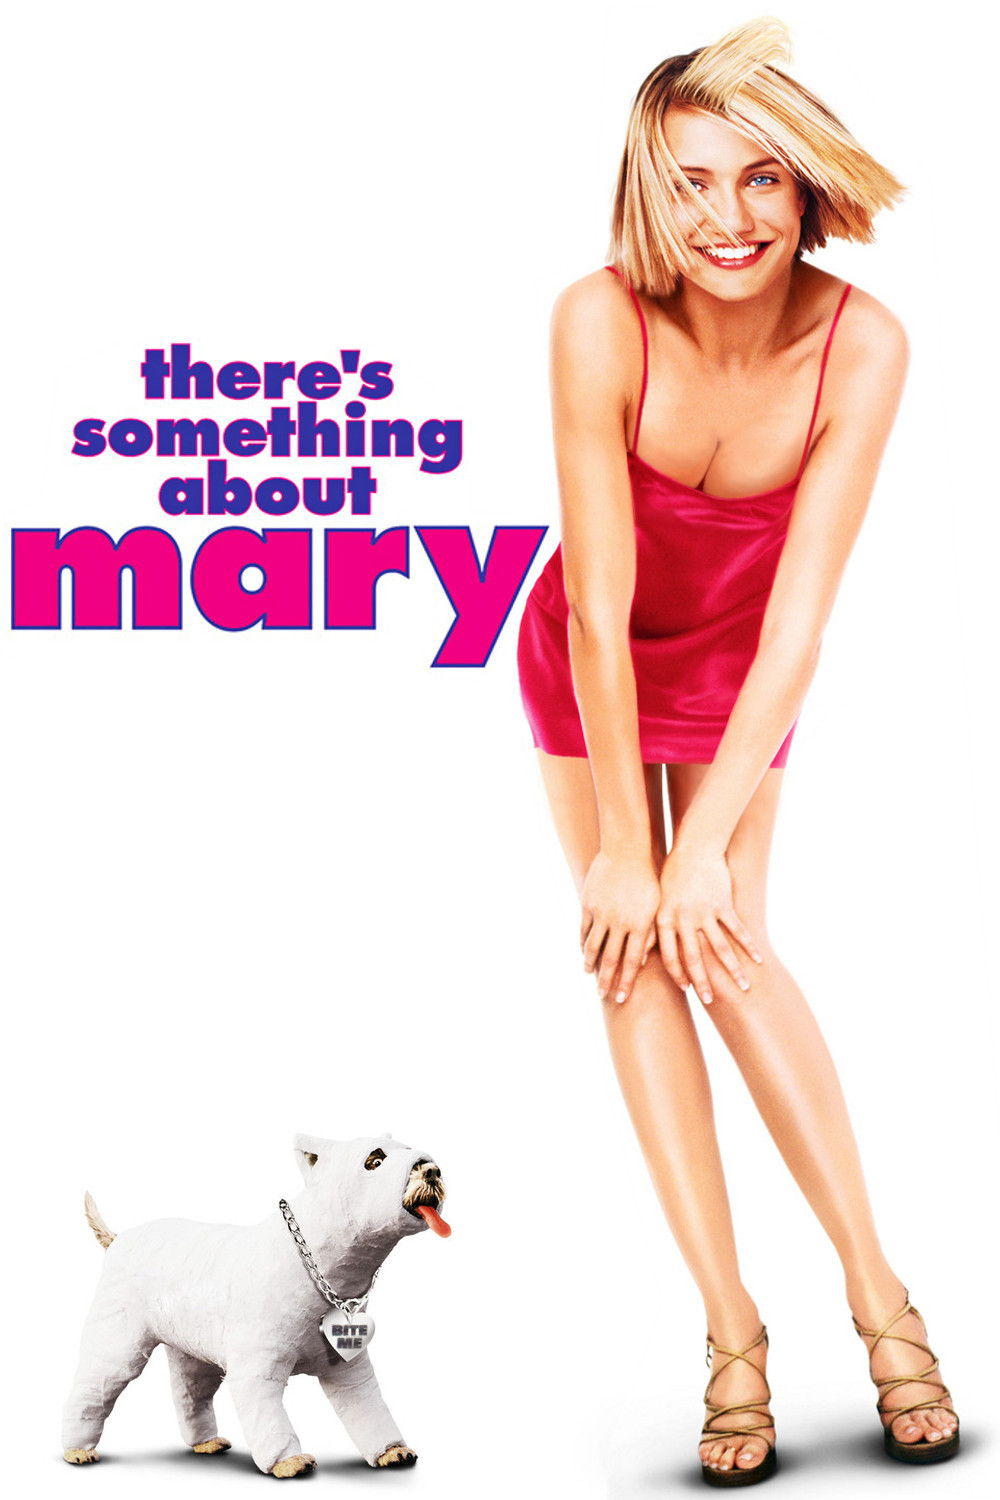 There's something about Mary, Autokino 2004